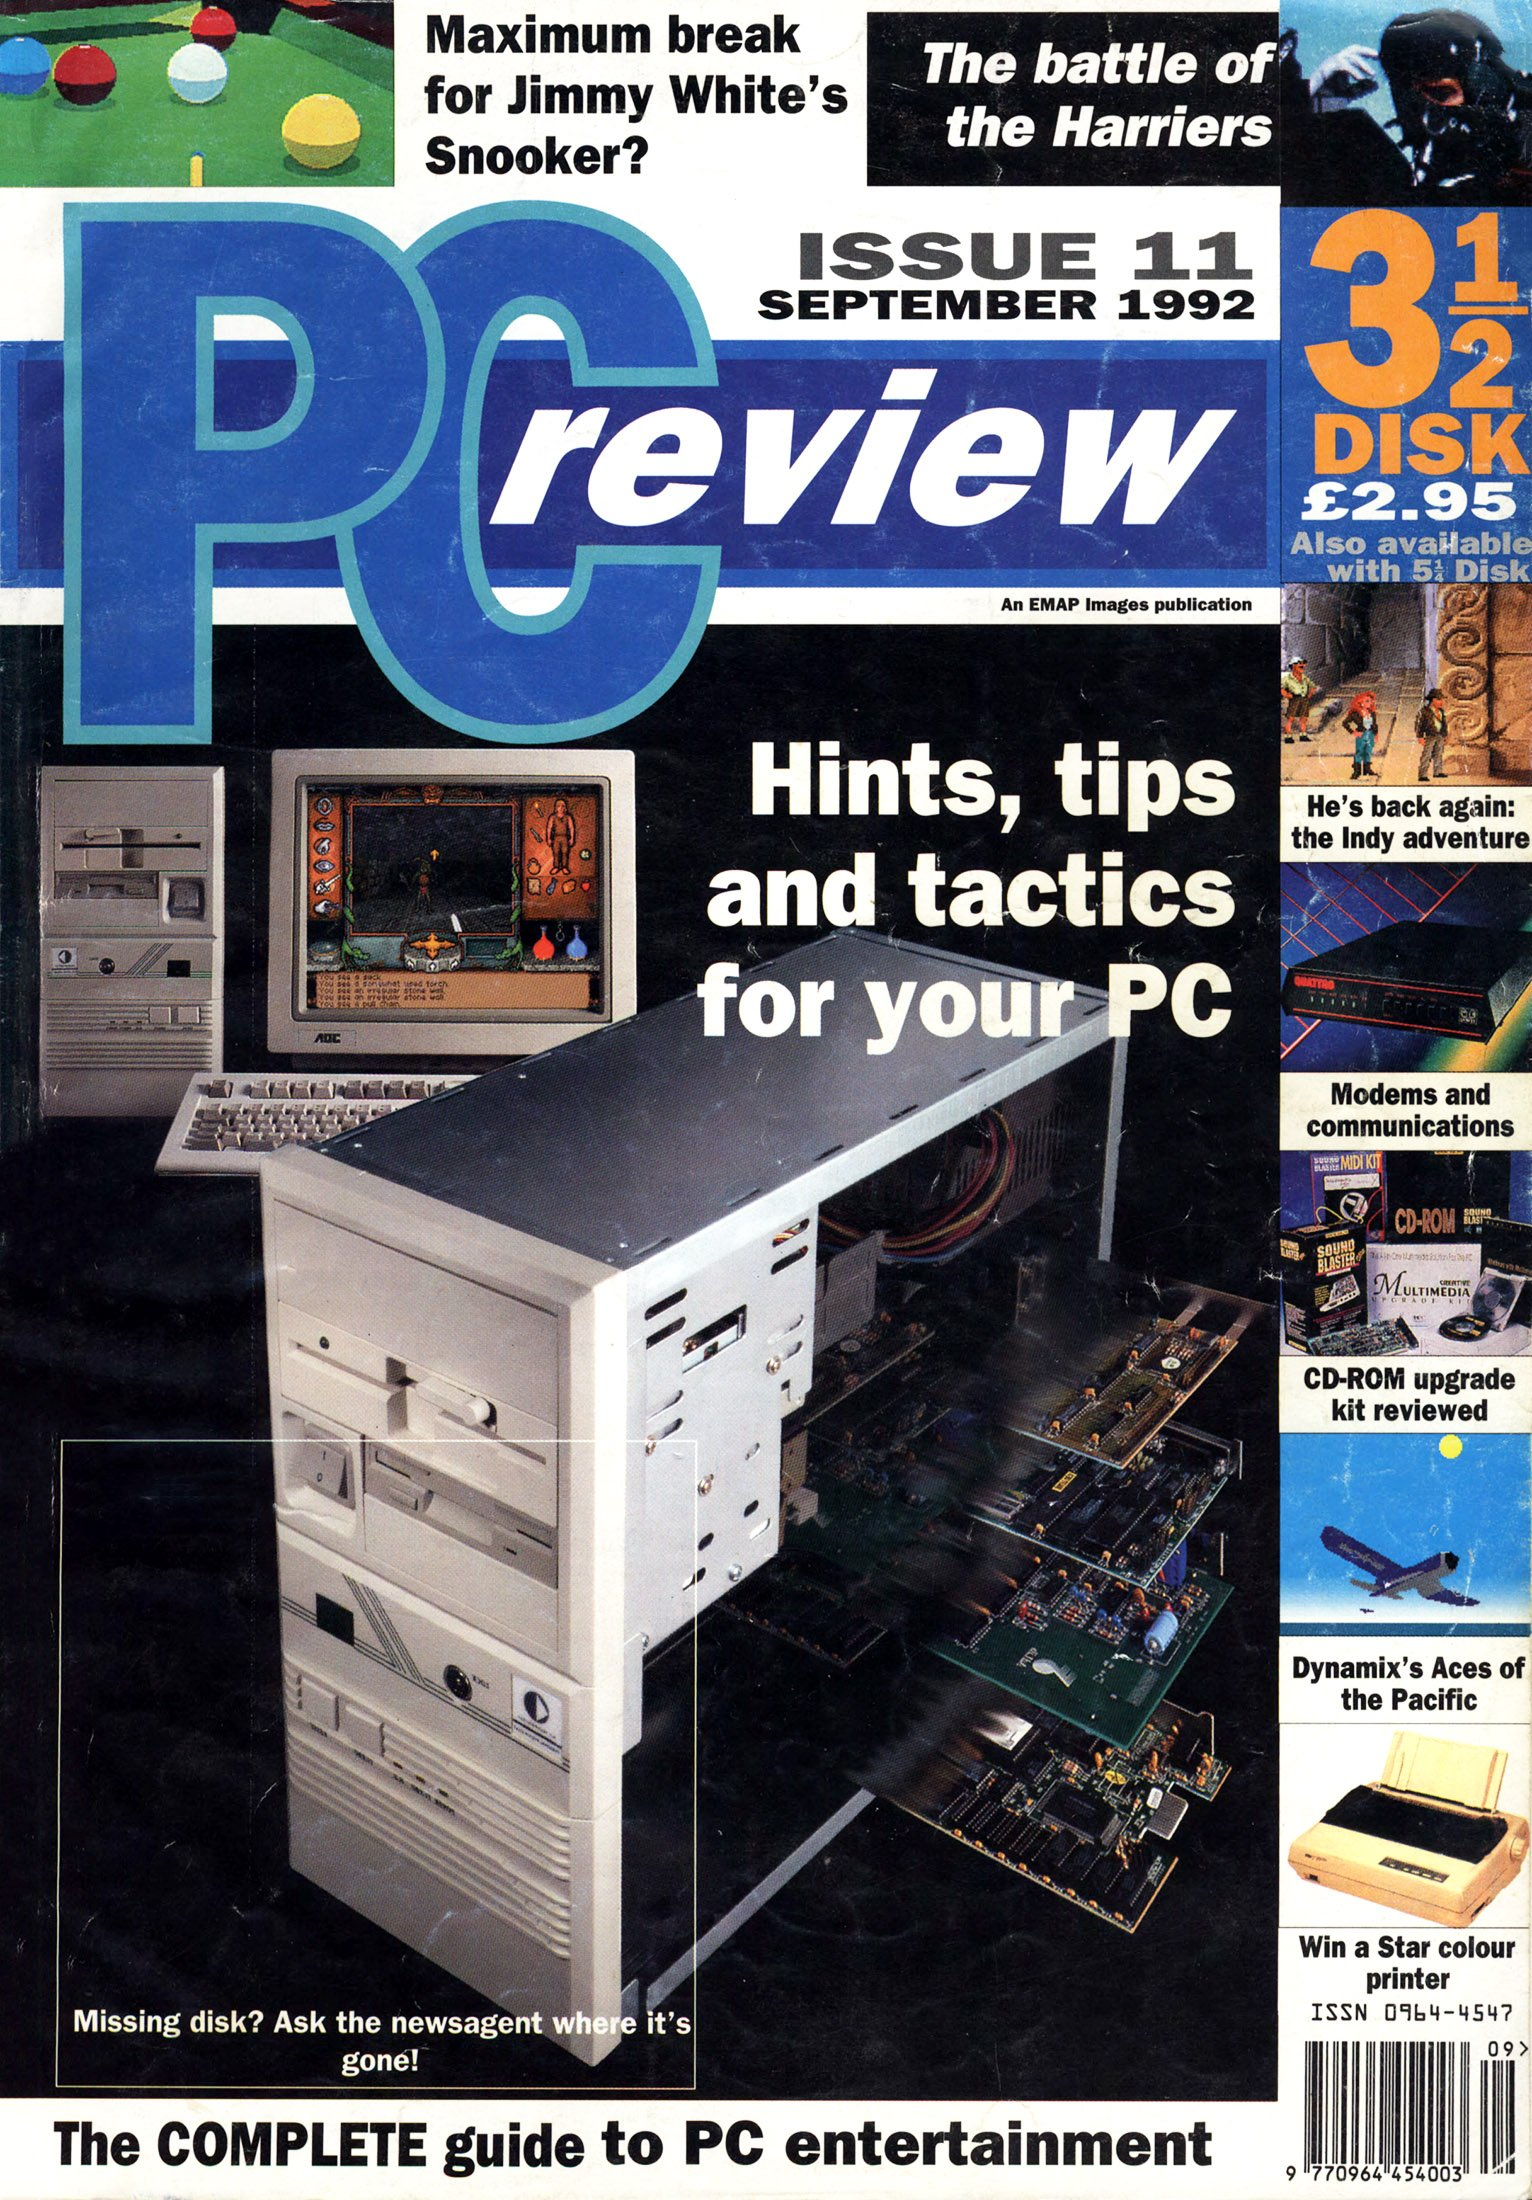 PC Review Issue 11 (September 1992)